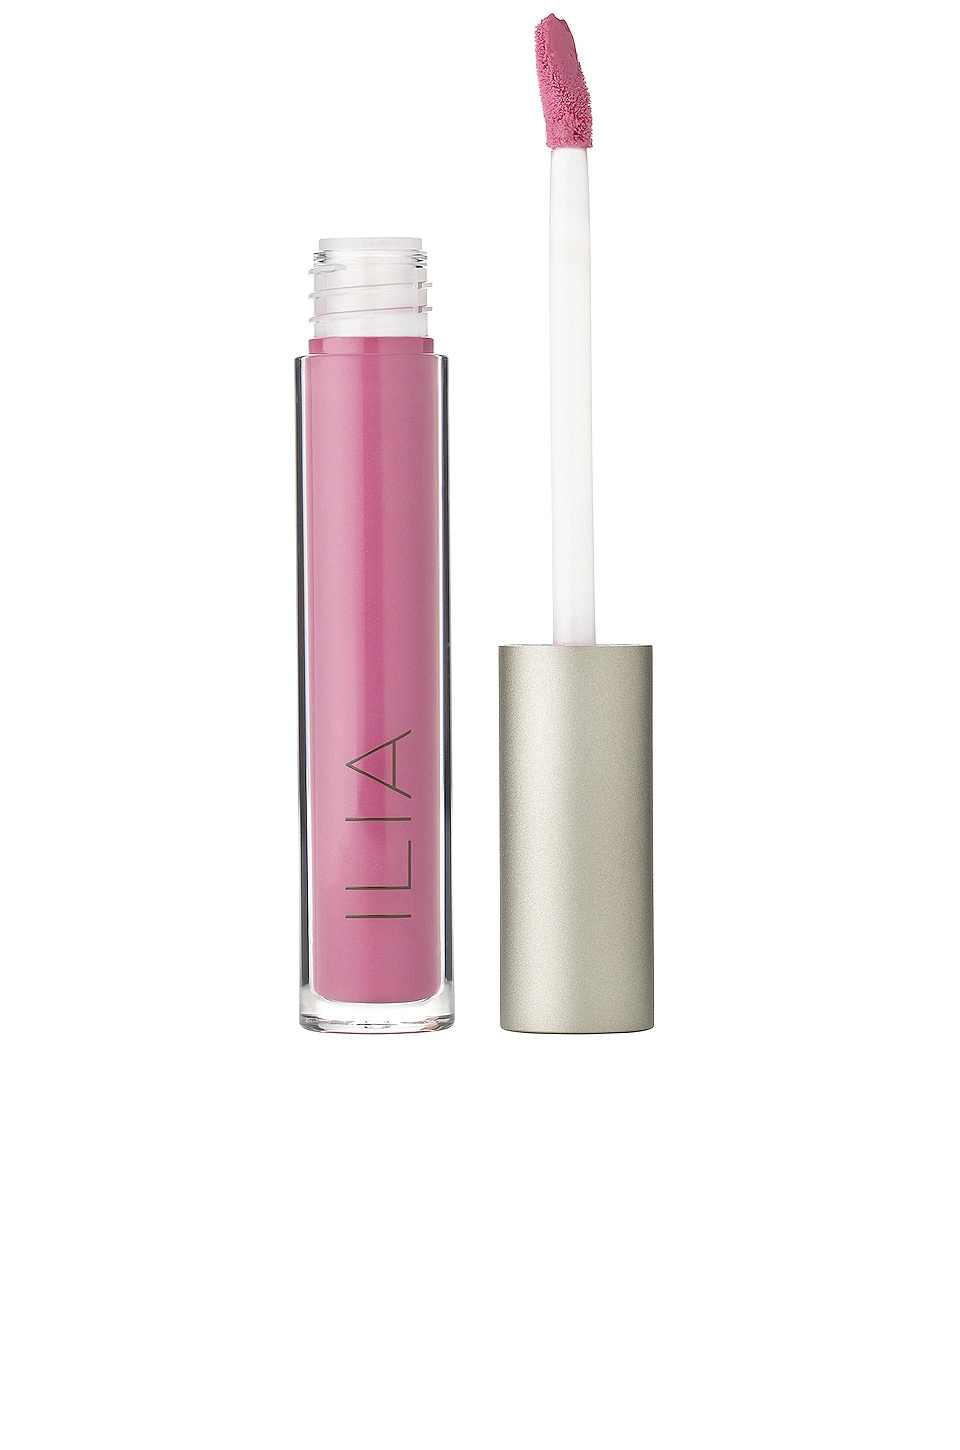 Ilia Lip Gloss in Love Buzz